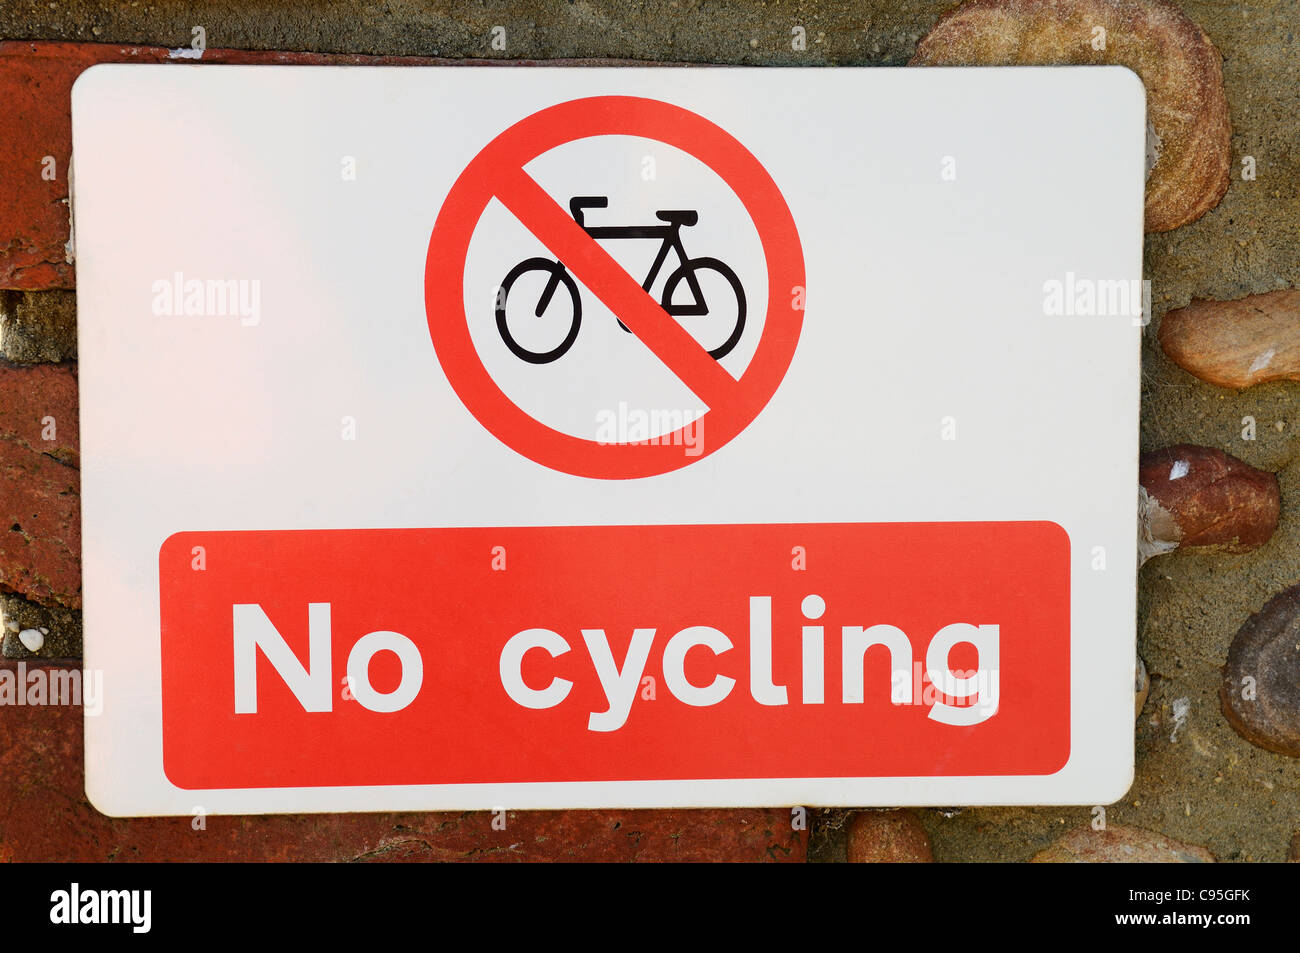 A No Cycling sign on a wall. - Stock Image